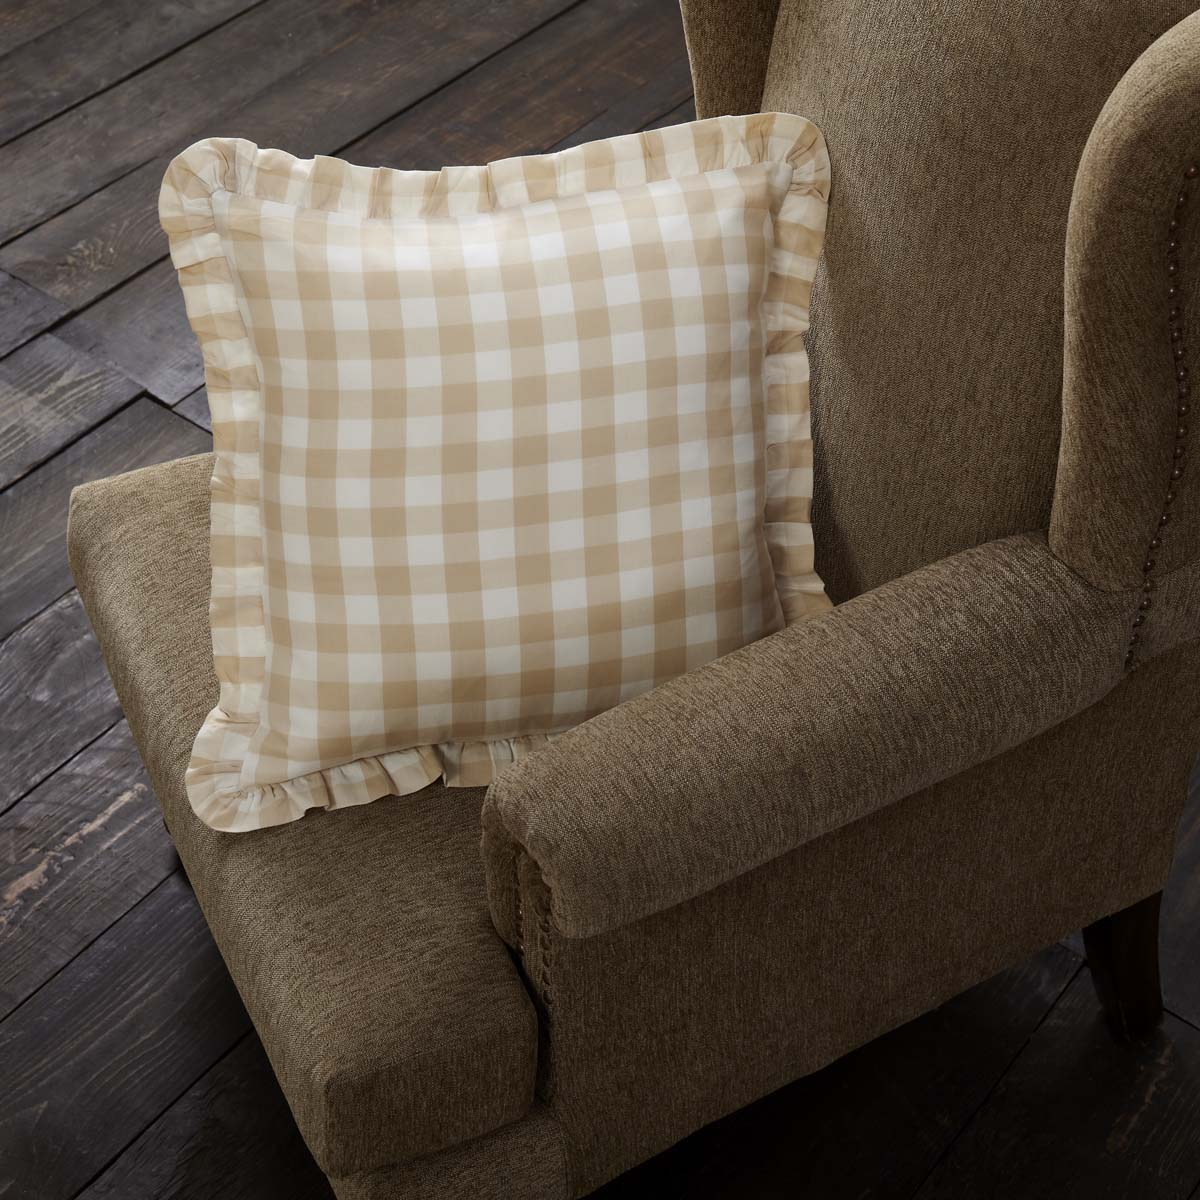 Annie Buffalo Tan Check Ruffled Fabric Pillow 18x18